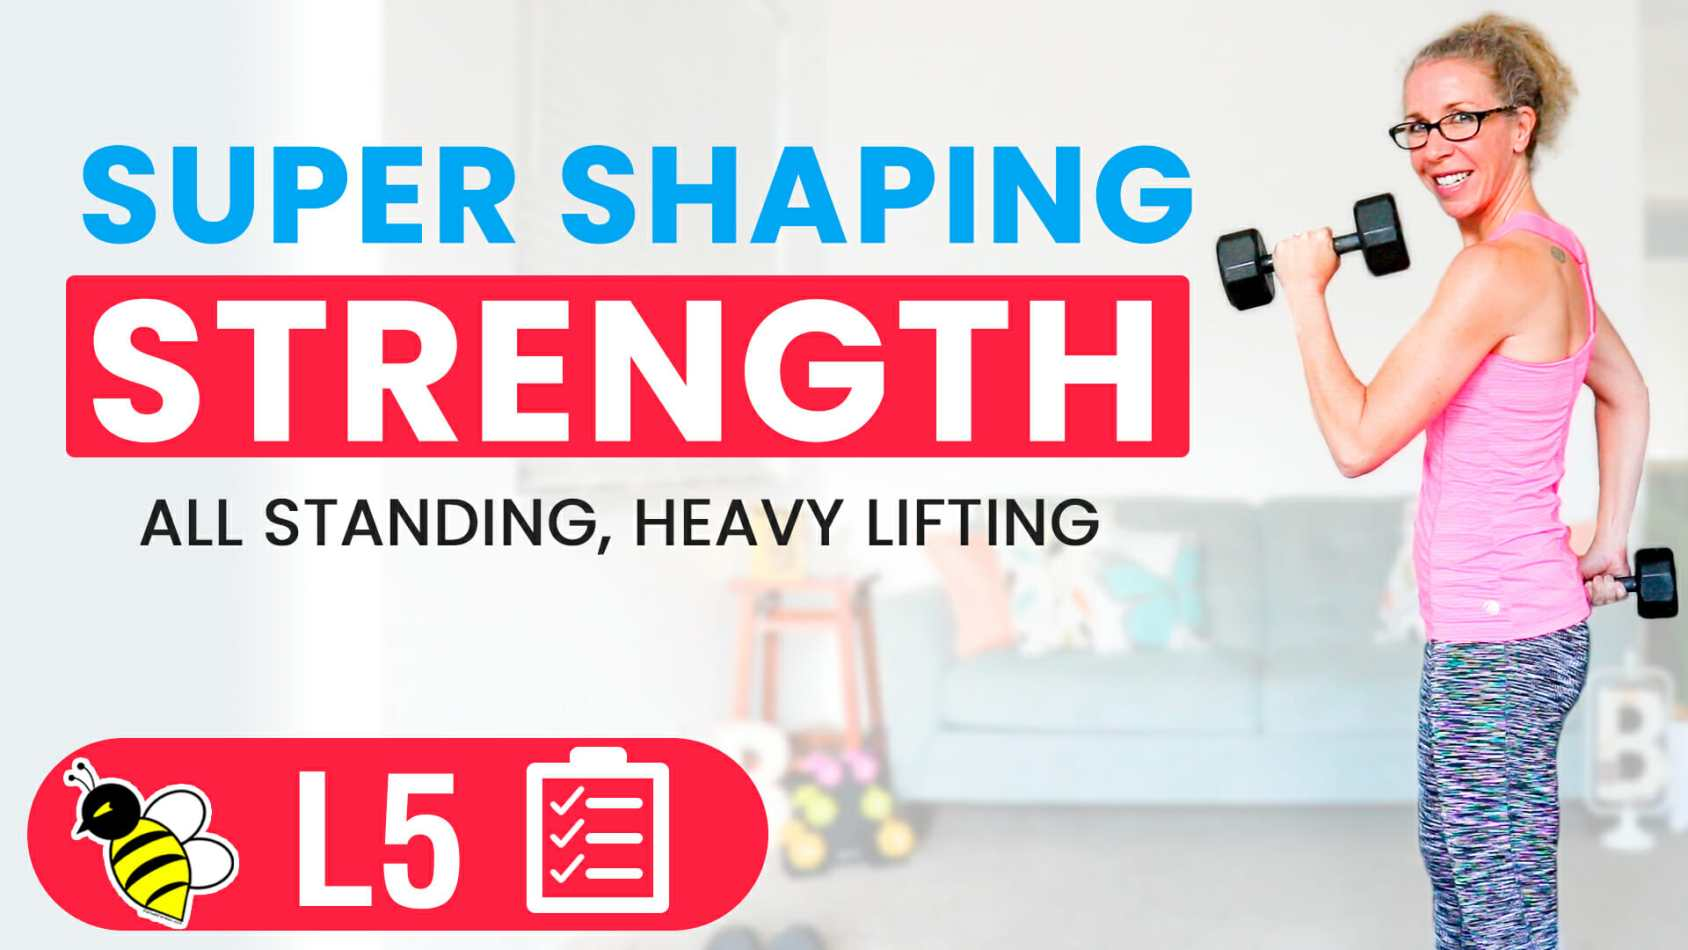 SUPER SHAPING 45 minute STRENGTH workout for women